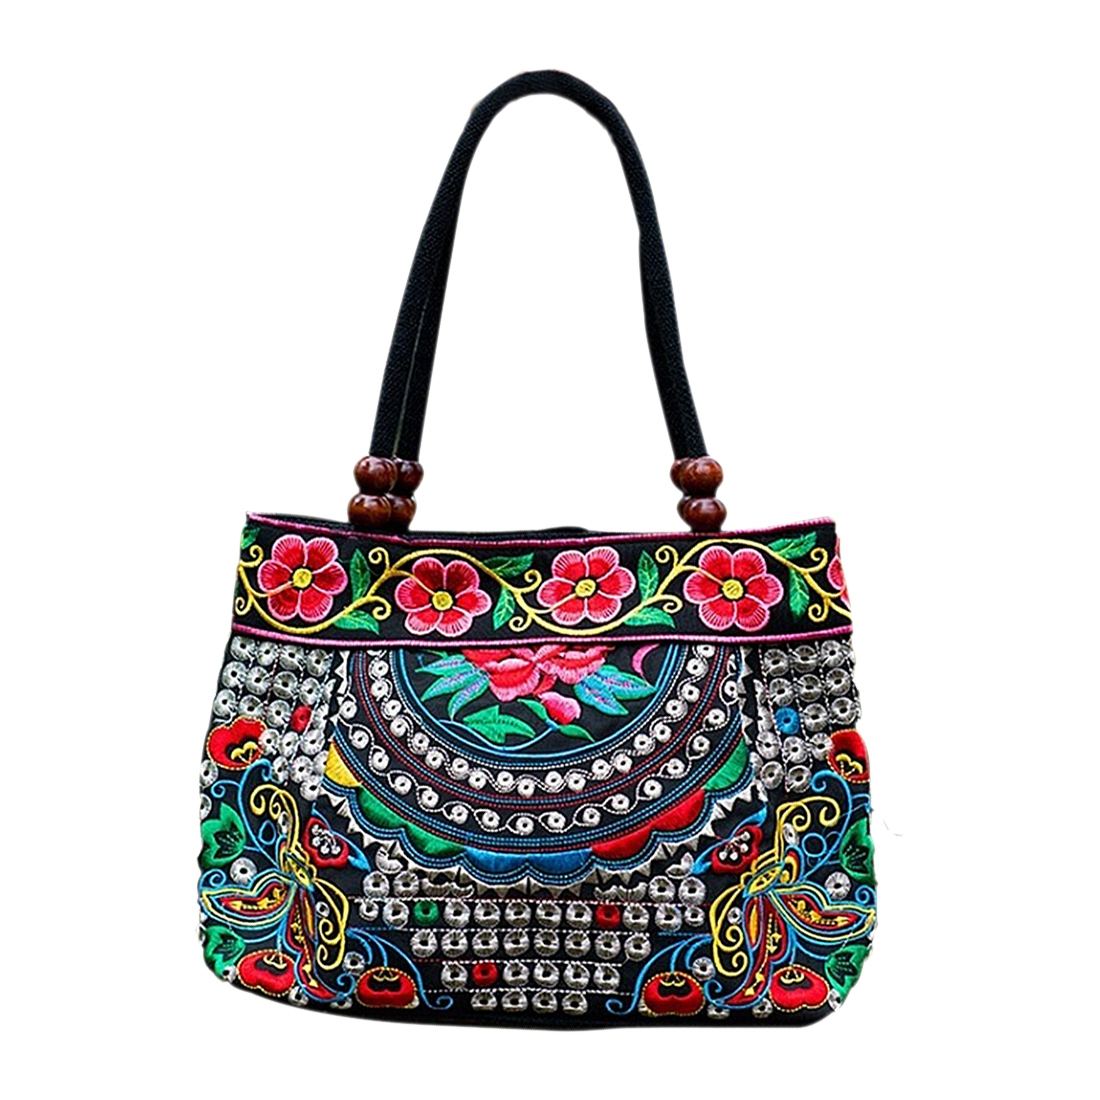 Hot Fashion Chinese Style Women Handbag Embroidery Ethnic Summer Fashion Handmade Flowers Ladies Tote Shoulder Bags Cross-body 100 super cute little embroidery chinese embroidery handmade art design book